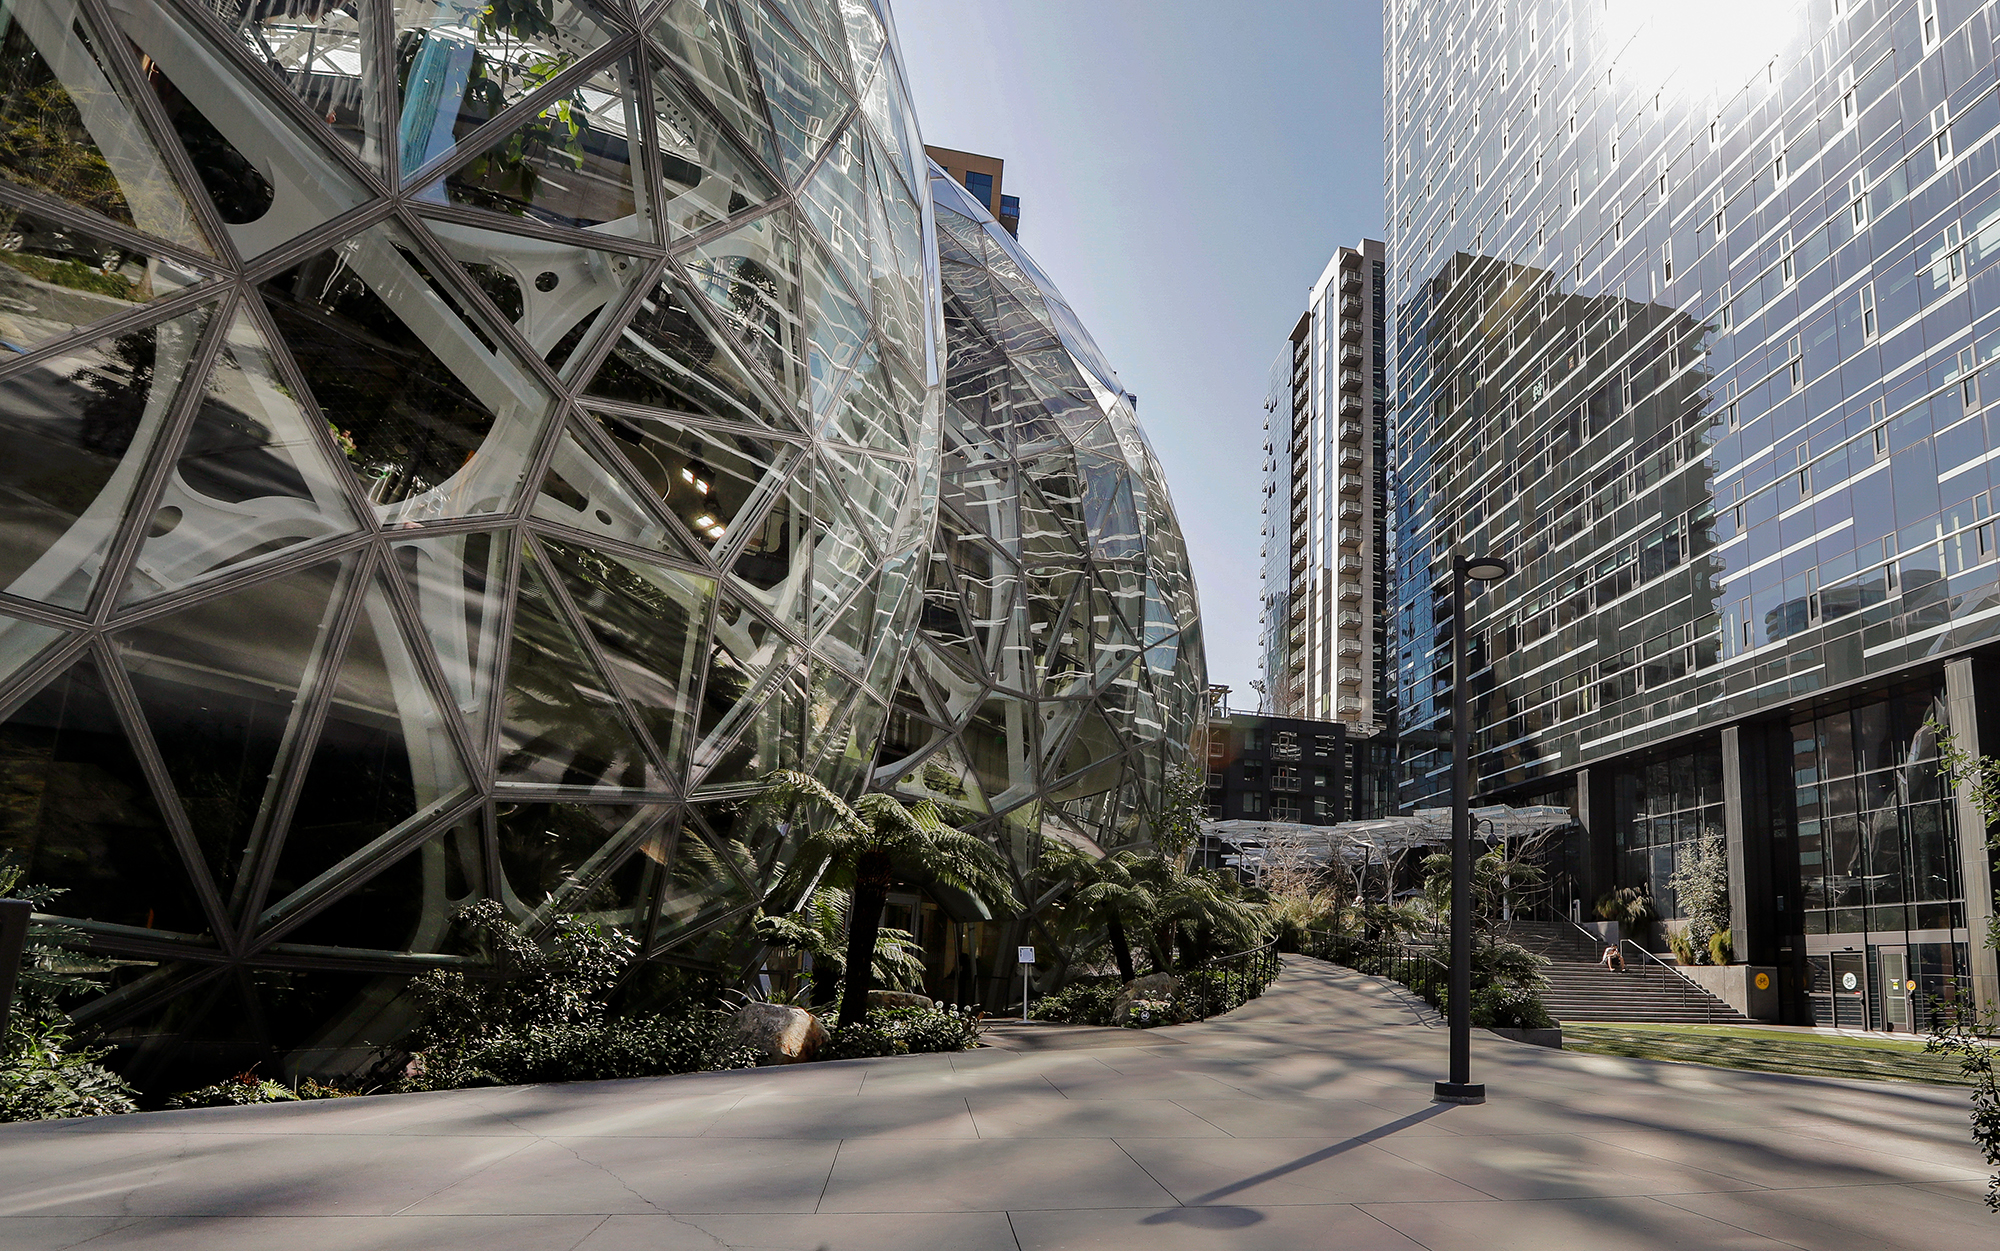 The Amazon campus outside the company headquarters in Seattle sits nearly deserted due to the coronavirus pandemic in March 2020.